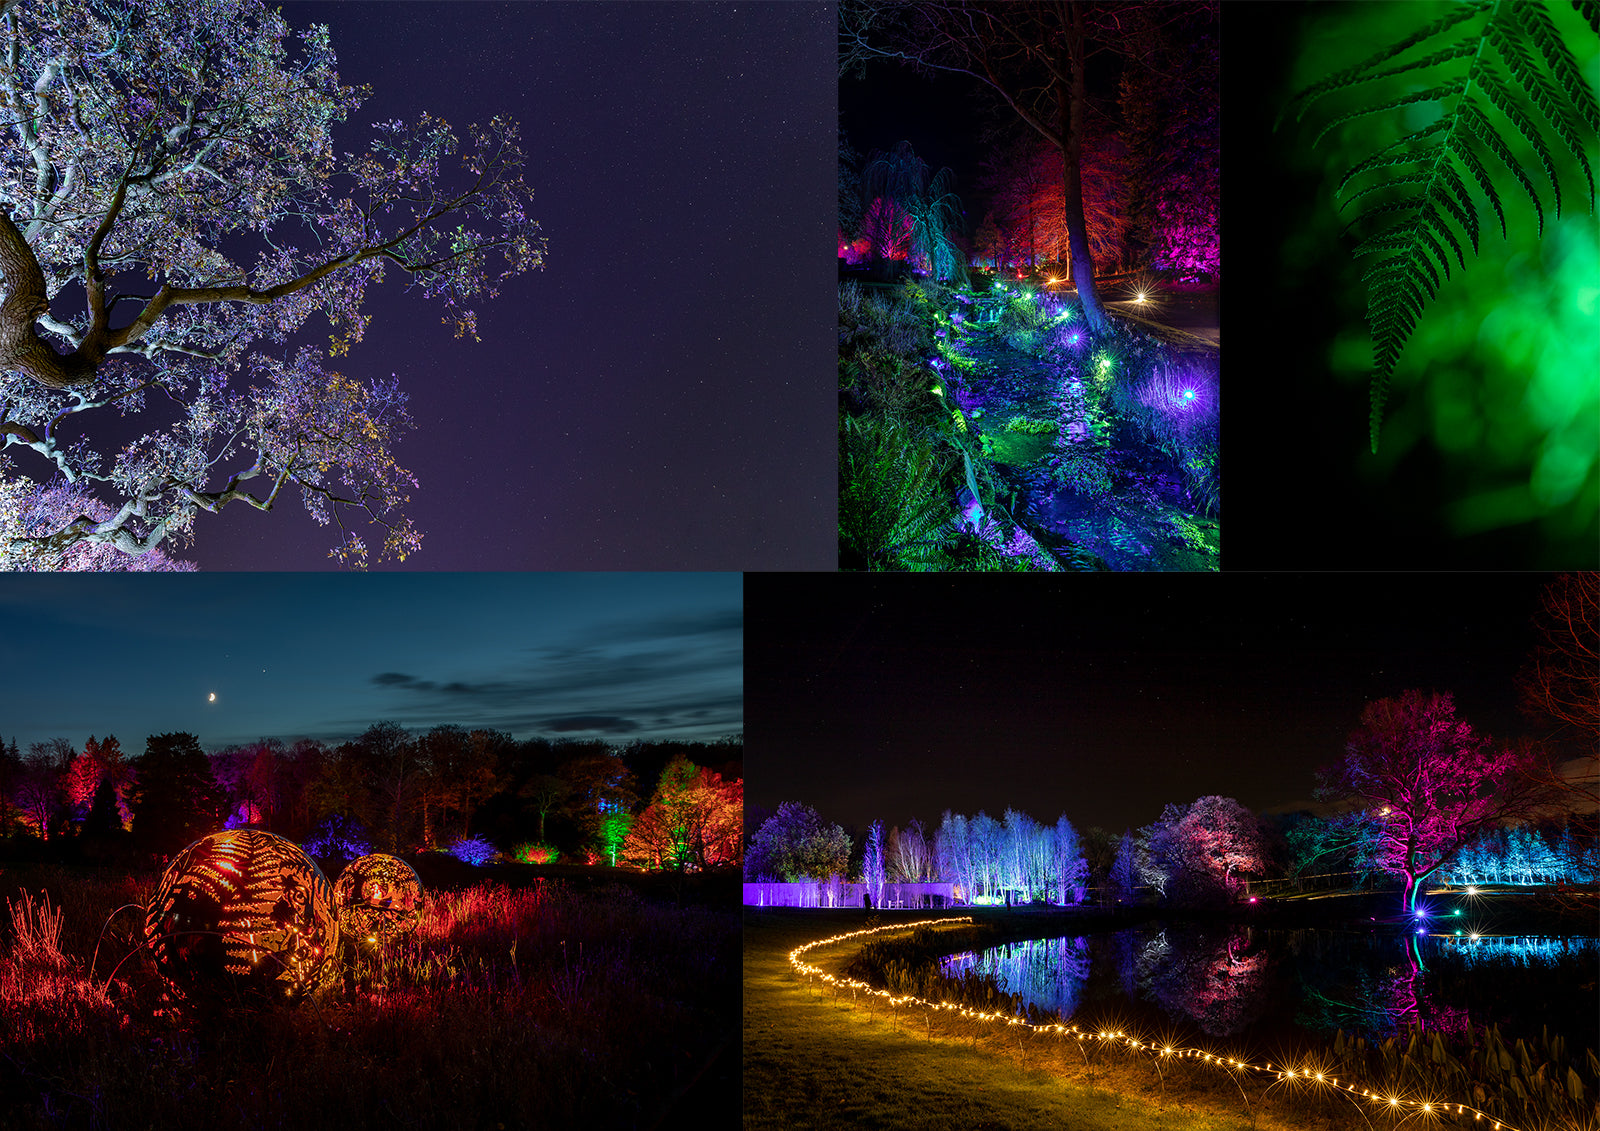 Night Photography at RHS Harlow Carr